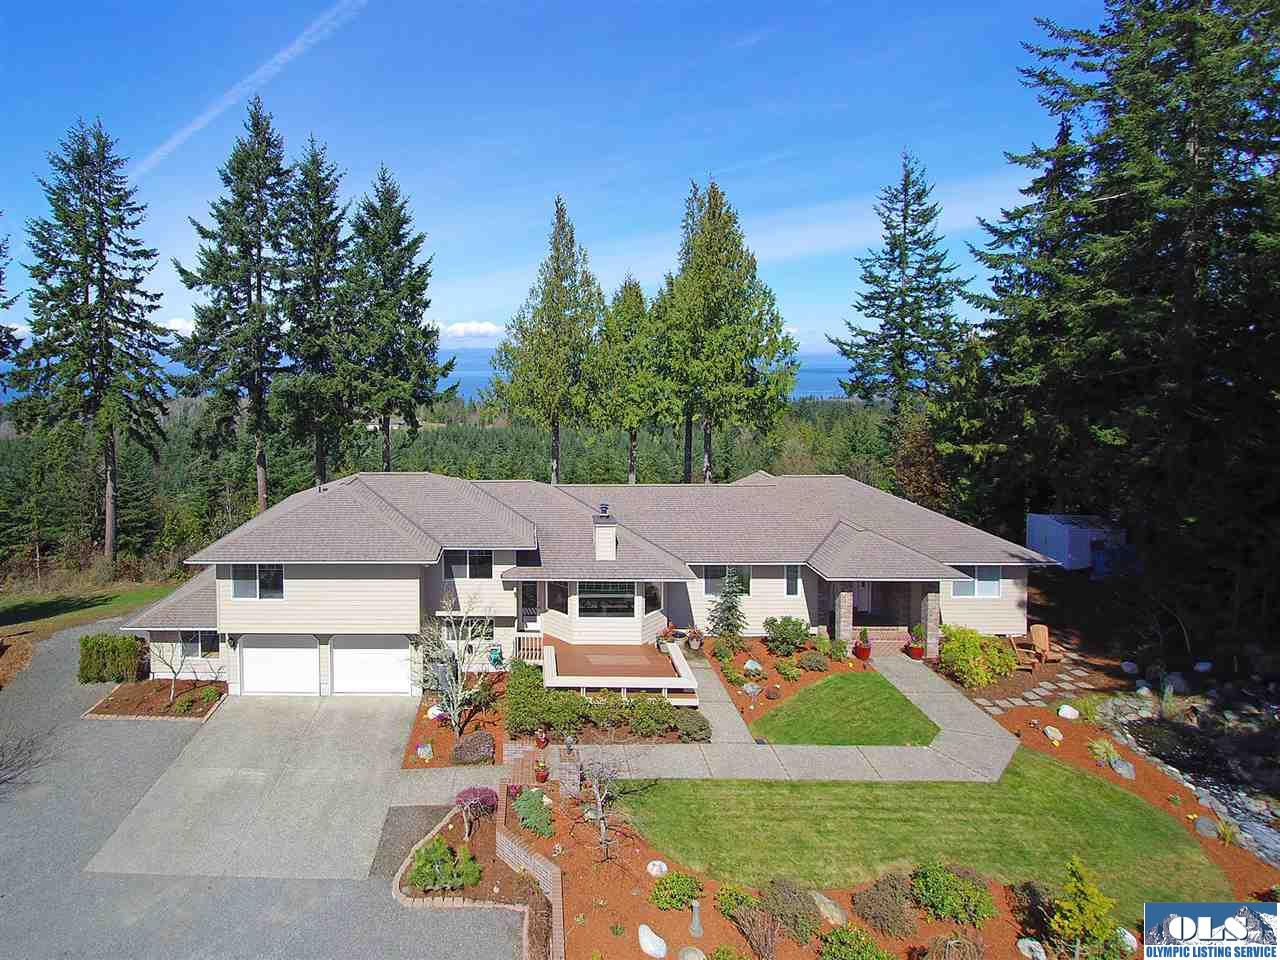 228 Cougar Ridge Road, Port Angeles, WA 98363